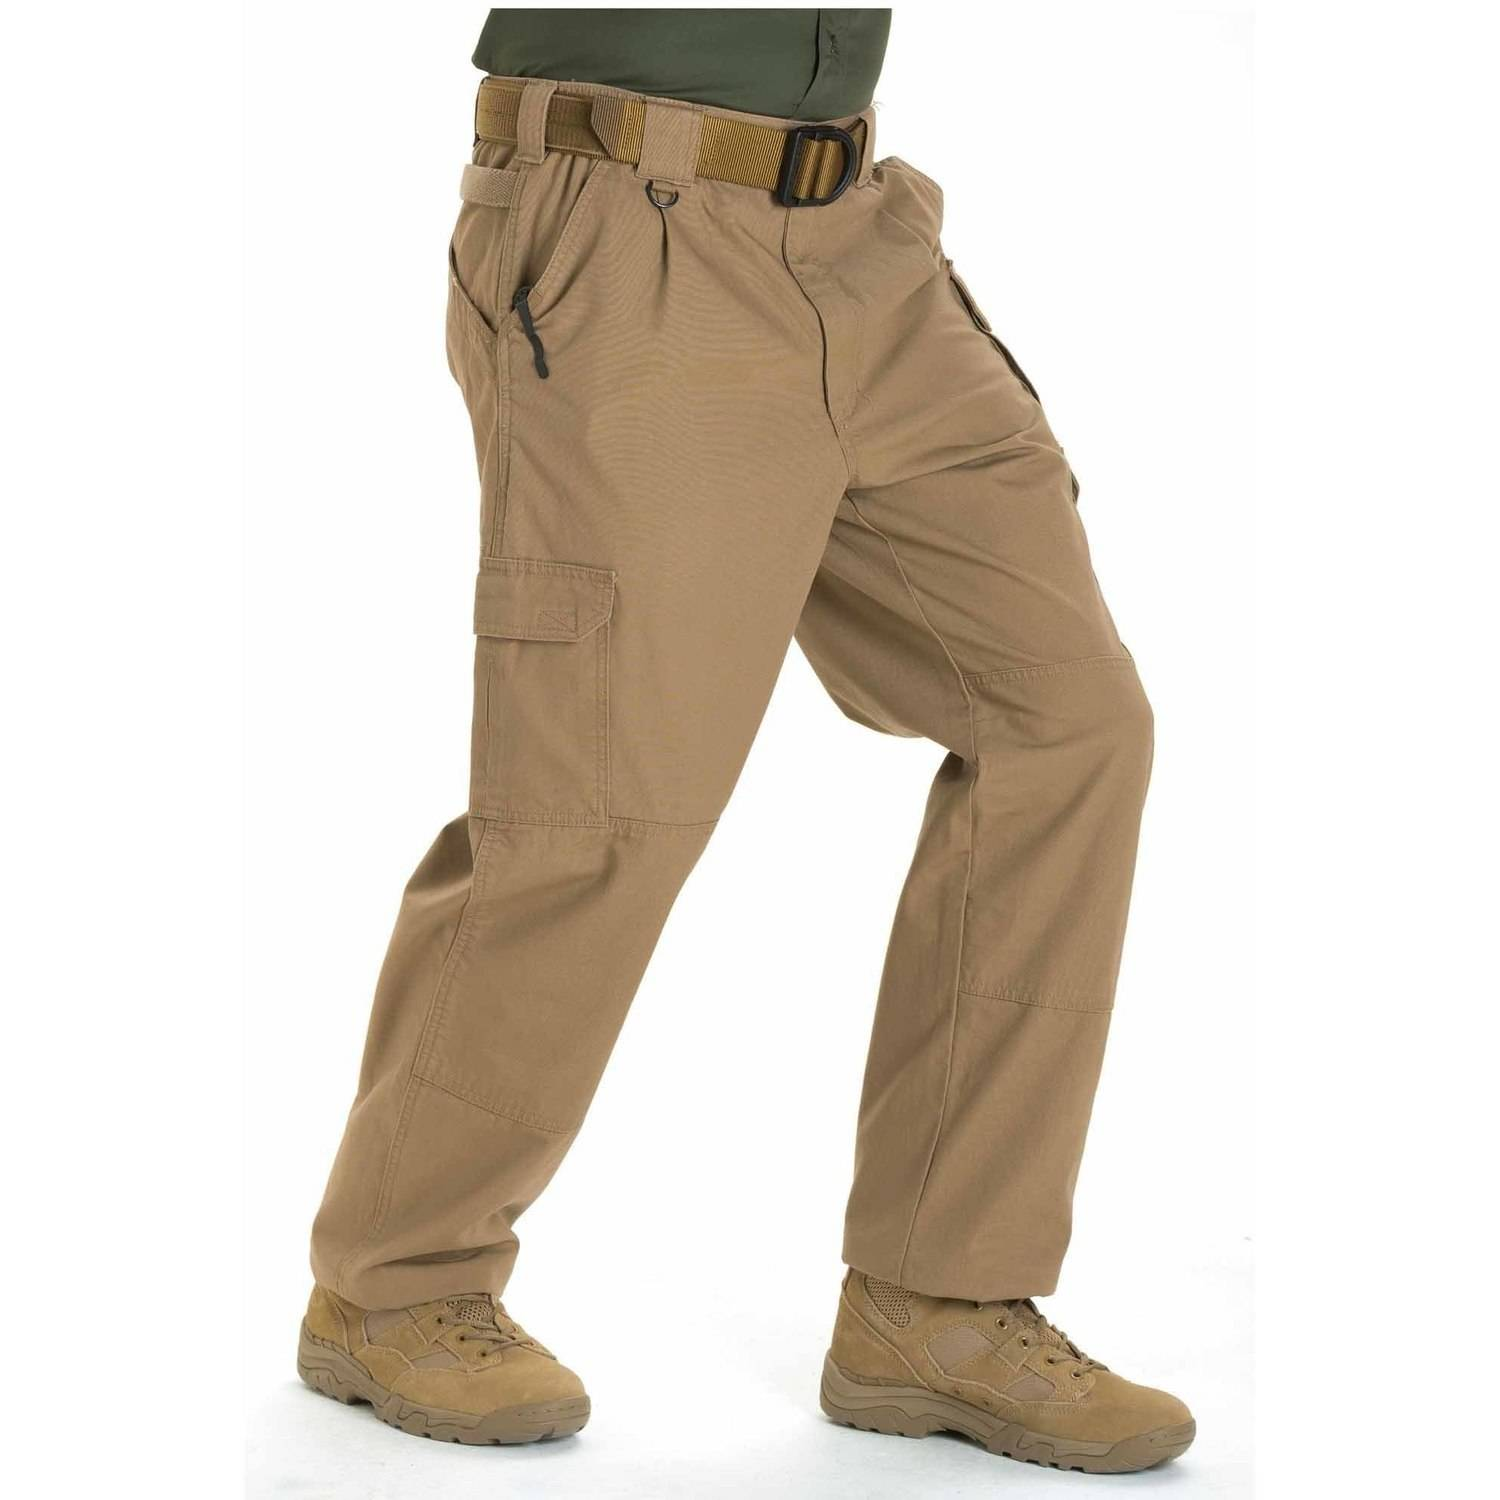 5.11 Tactical Men's Cotton Tactical Pant, Coyote Brown